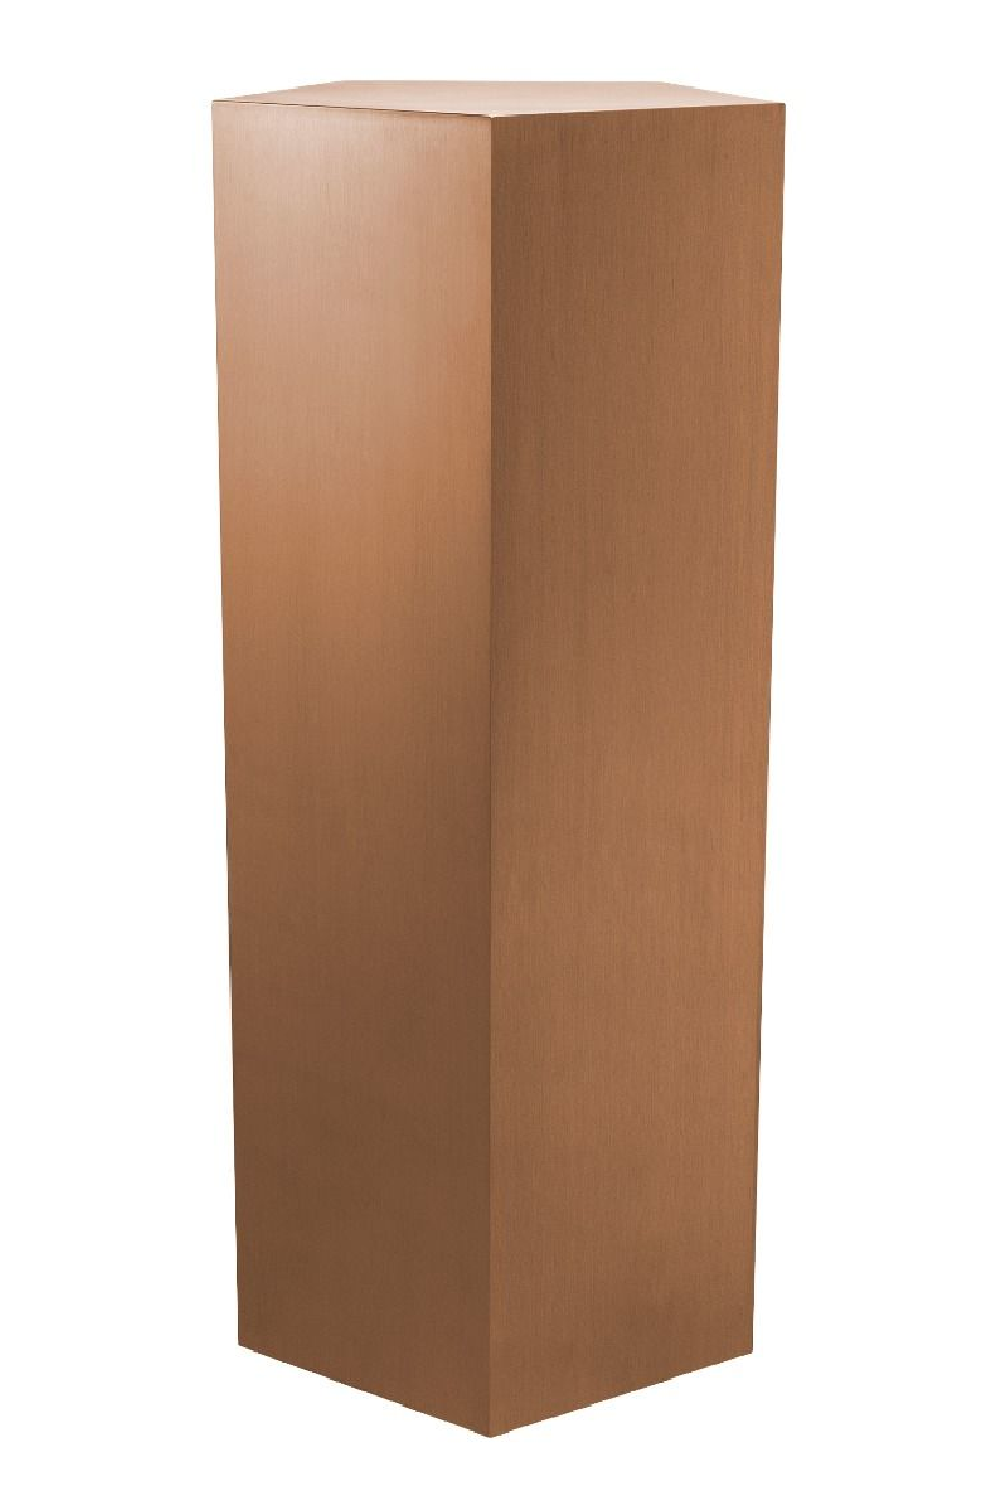 Brushed Copper Pedestal Column - L | Eichholtz Meissner | OROA Decor